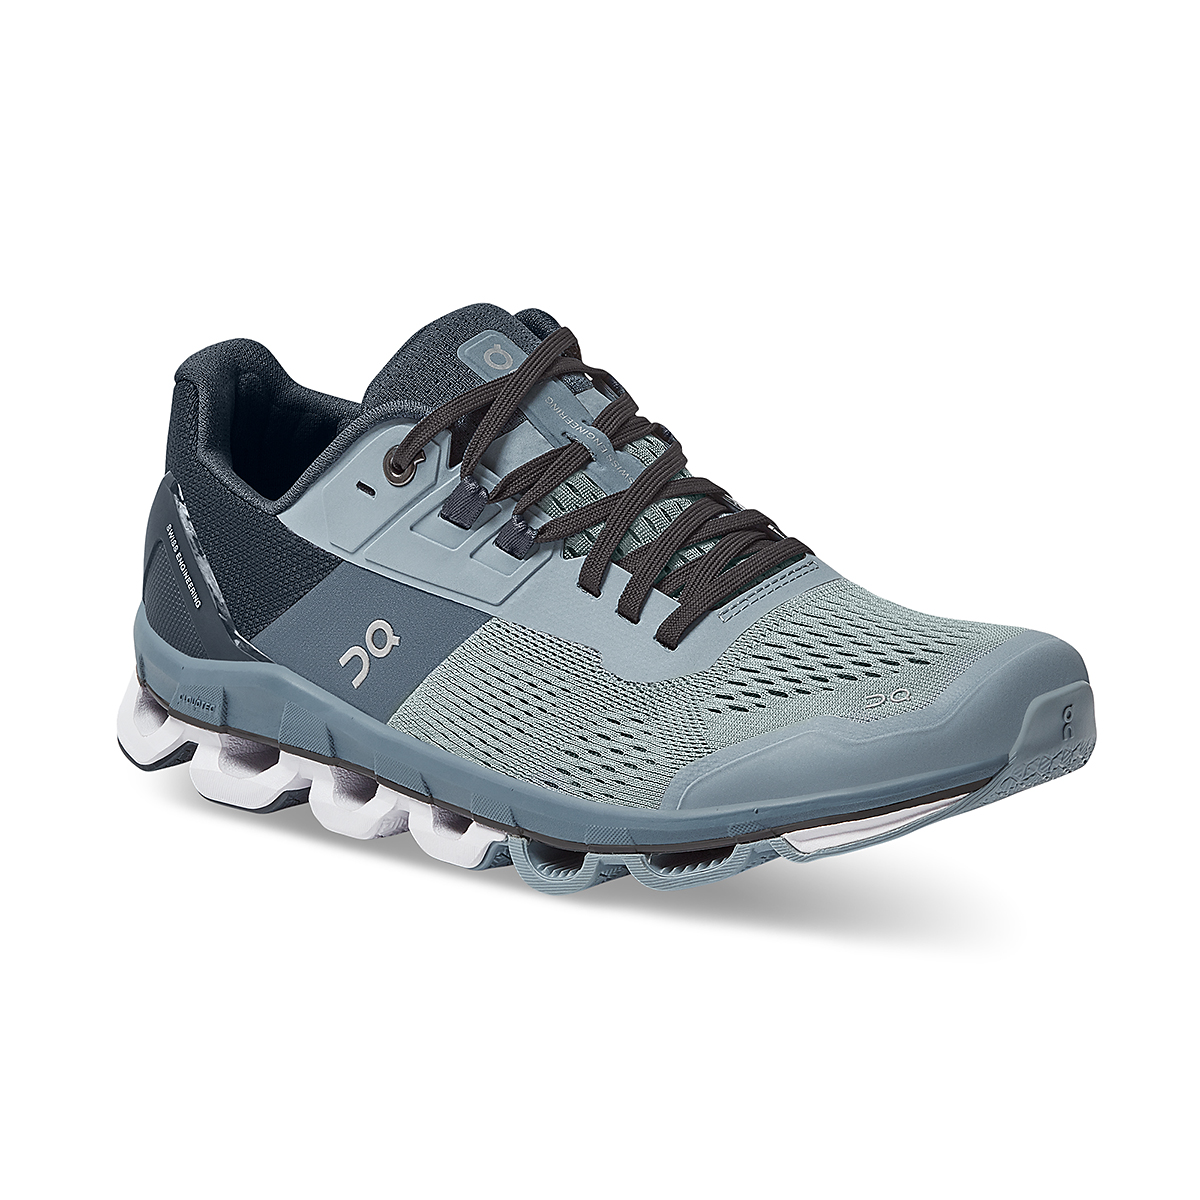 Women's On Cloudace Running Shoe - Color: Wash   Navy - Size: 6.5 - Width: Regular, Wash   Navy, large, image 3